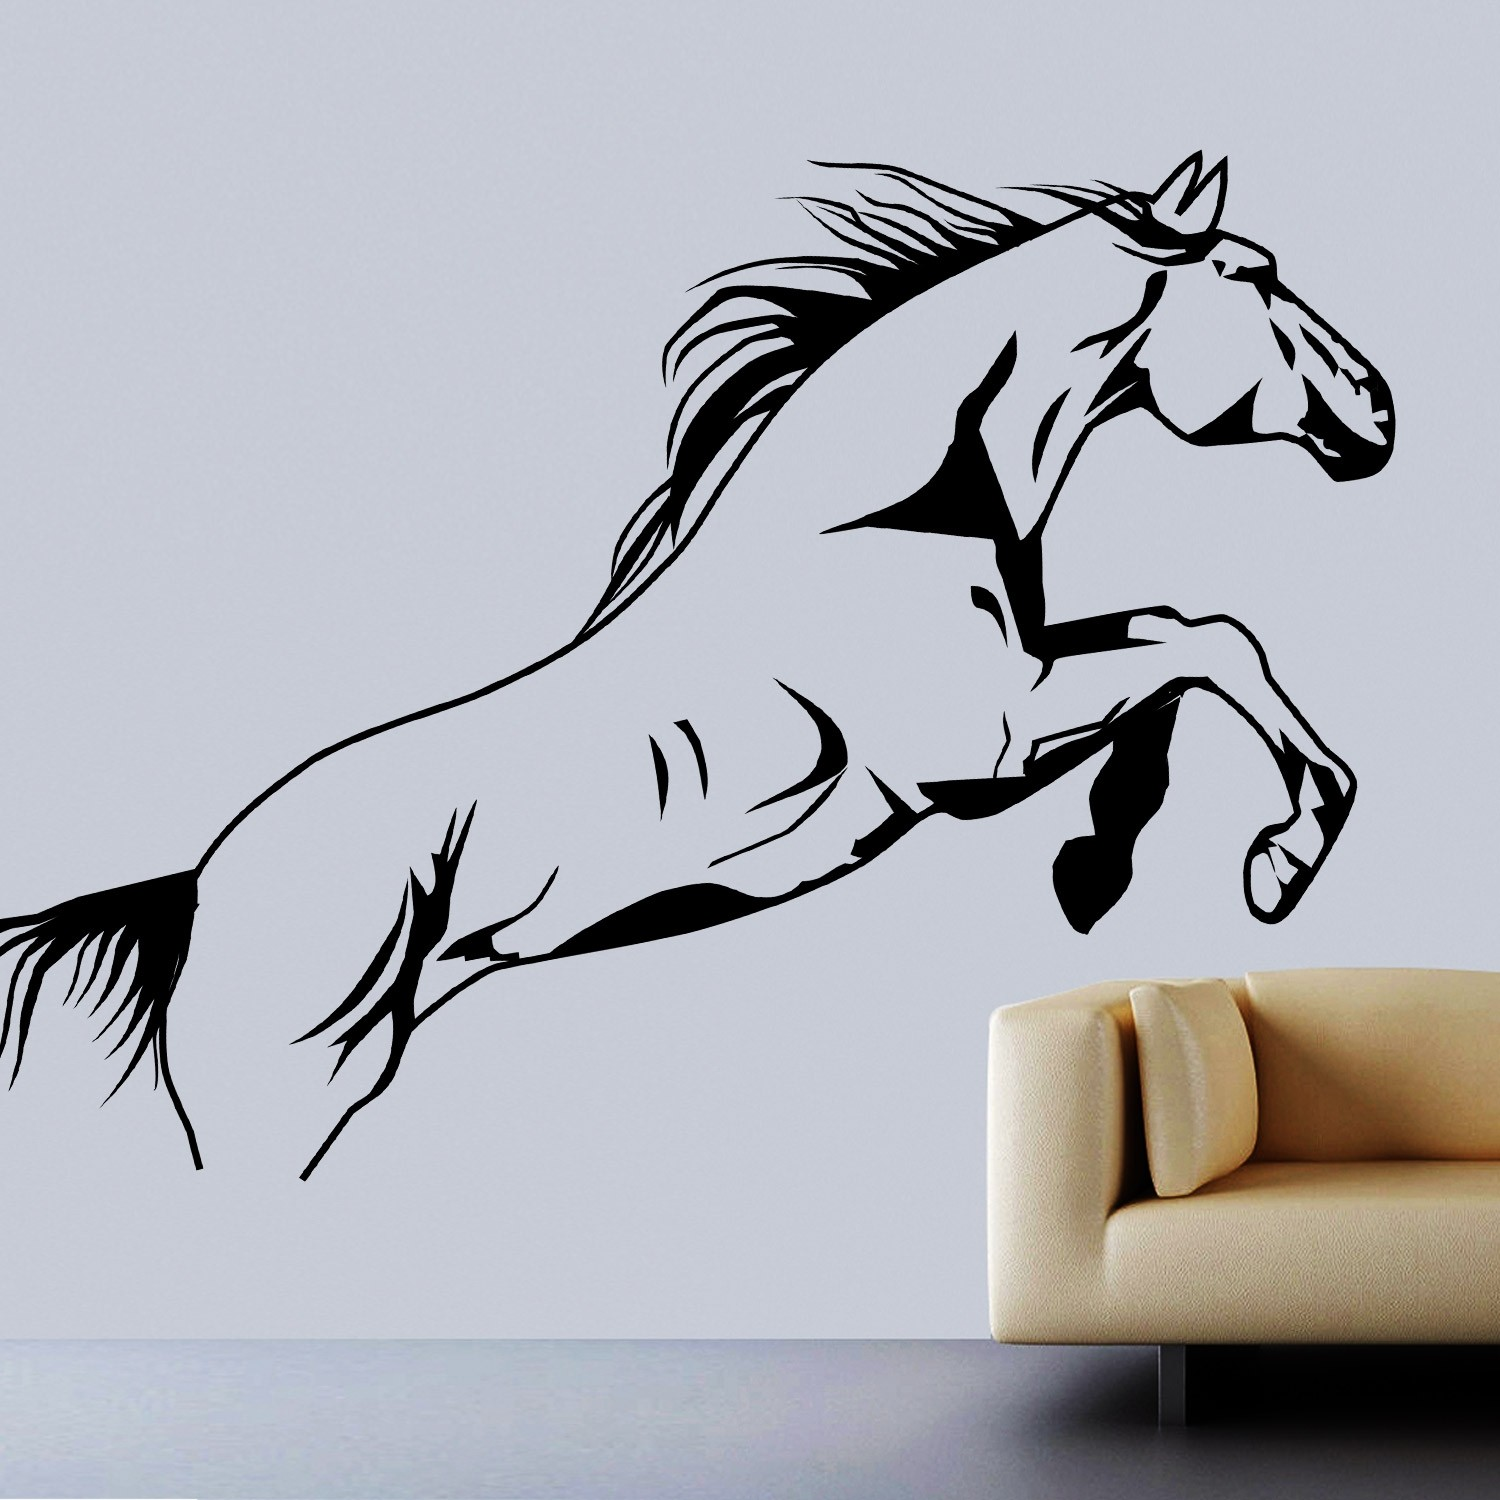 Flying Beauty Wall Sticker Decal-Small-Black